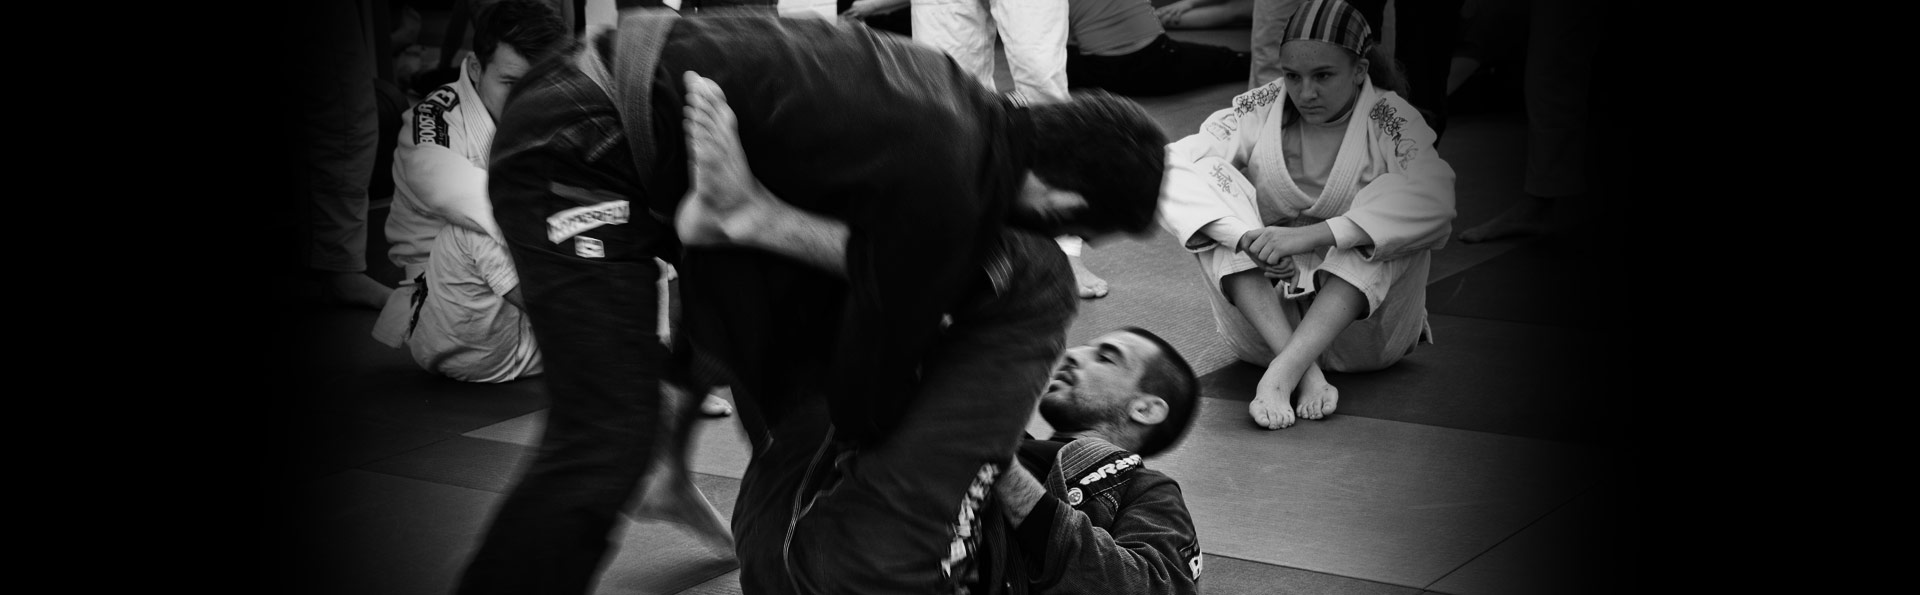 Brasa Brazilian Jiu Jitsu Leuven Belgium Martial Arts Wim Deputter Teaching open guard